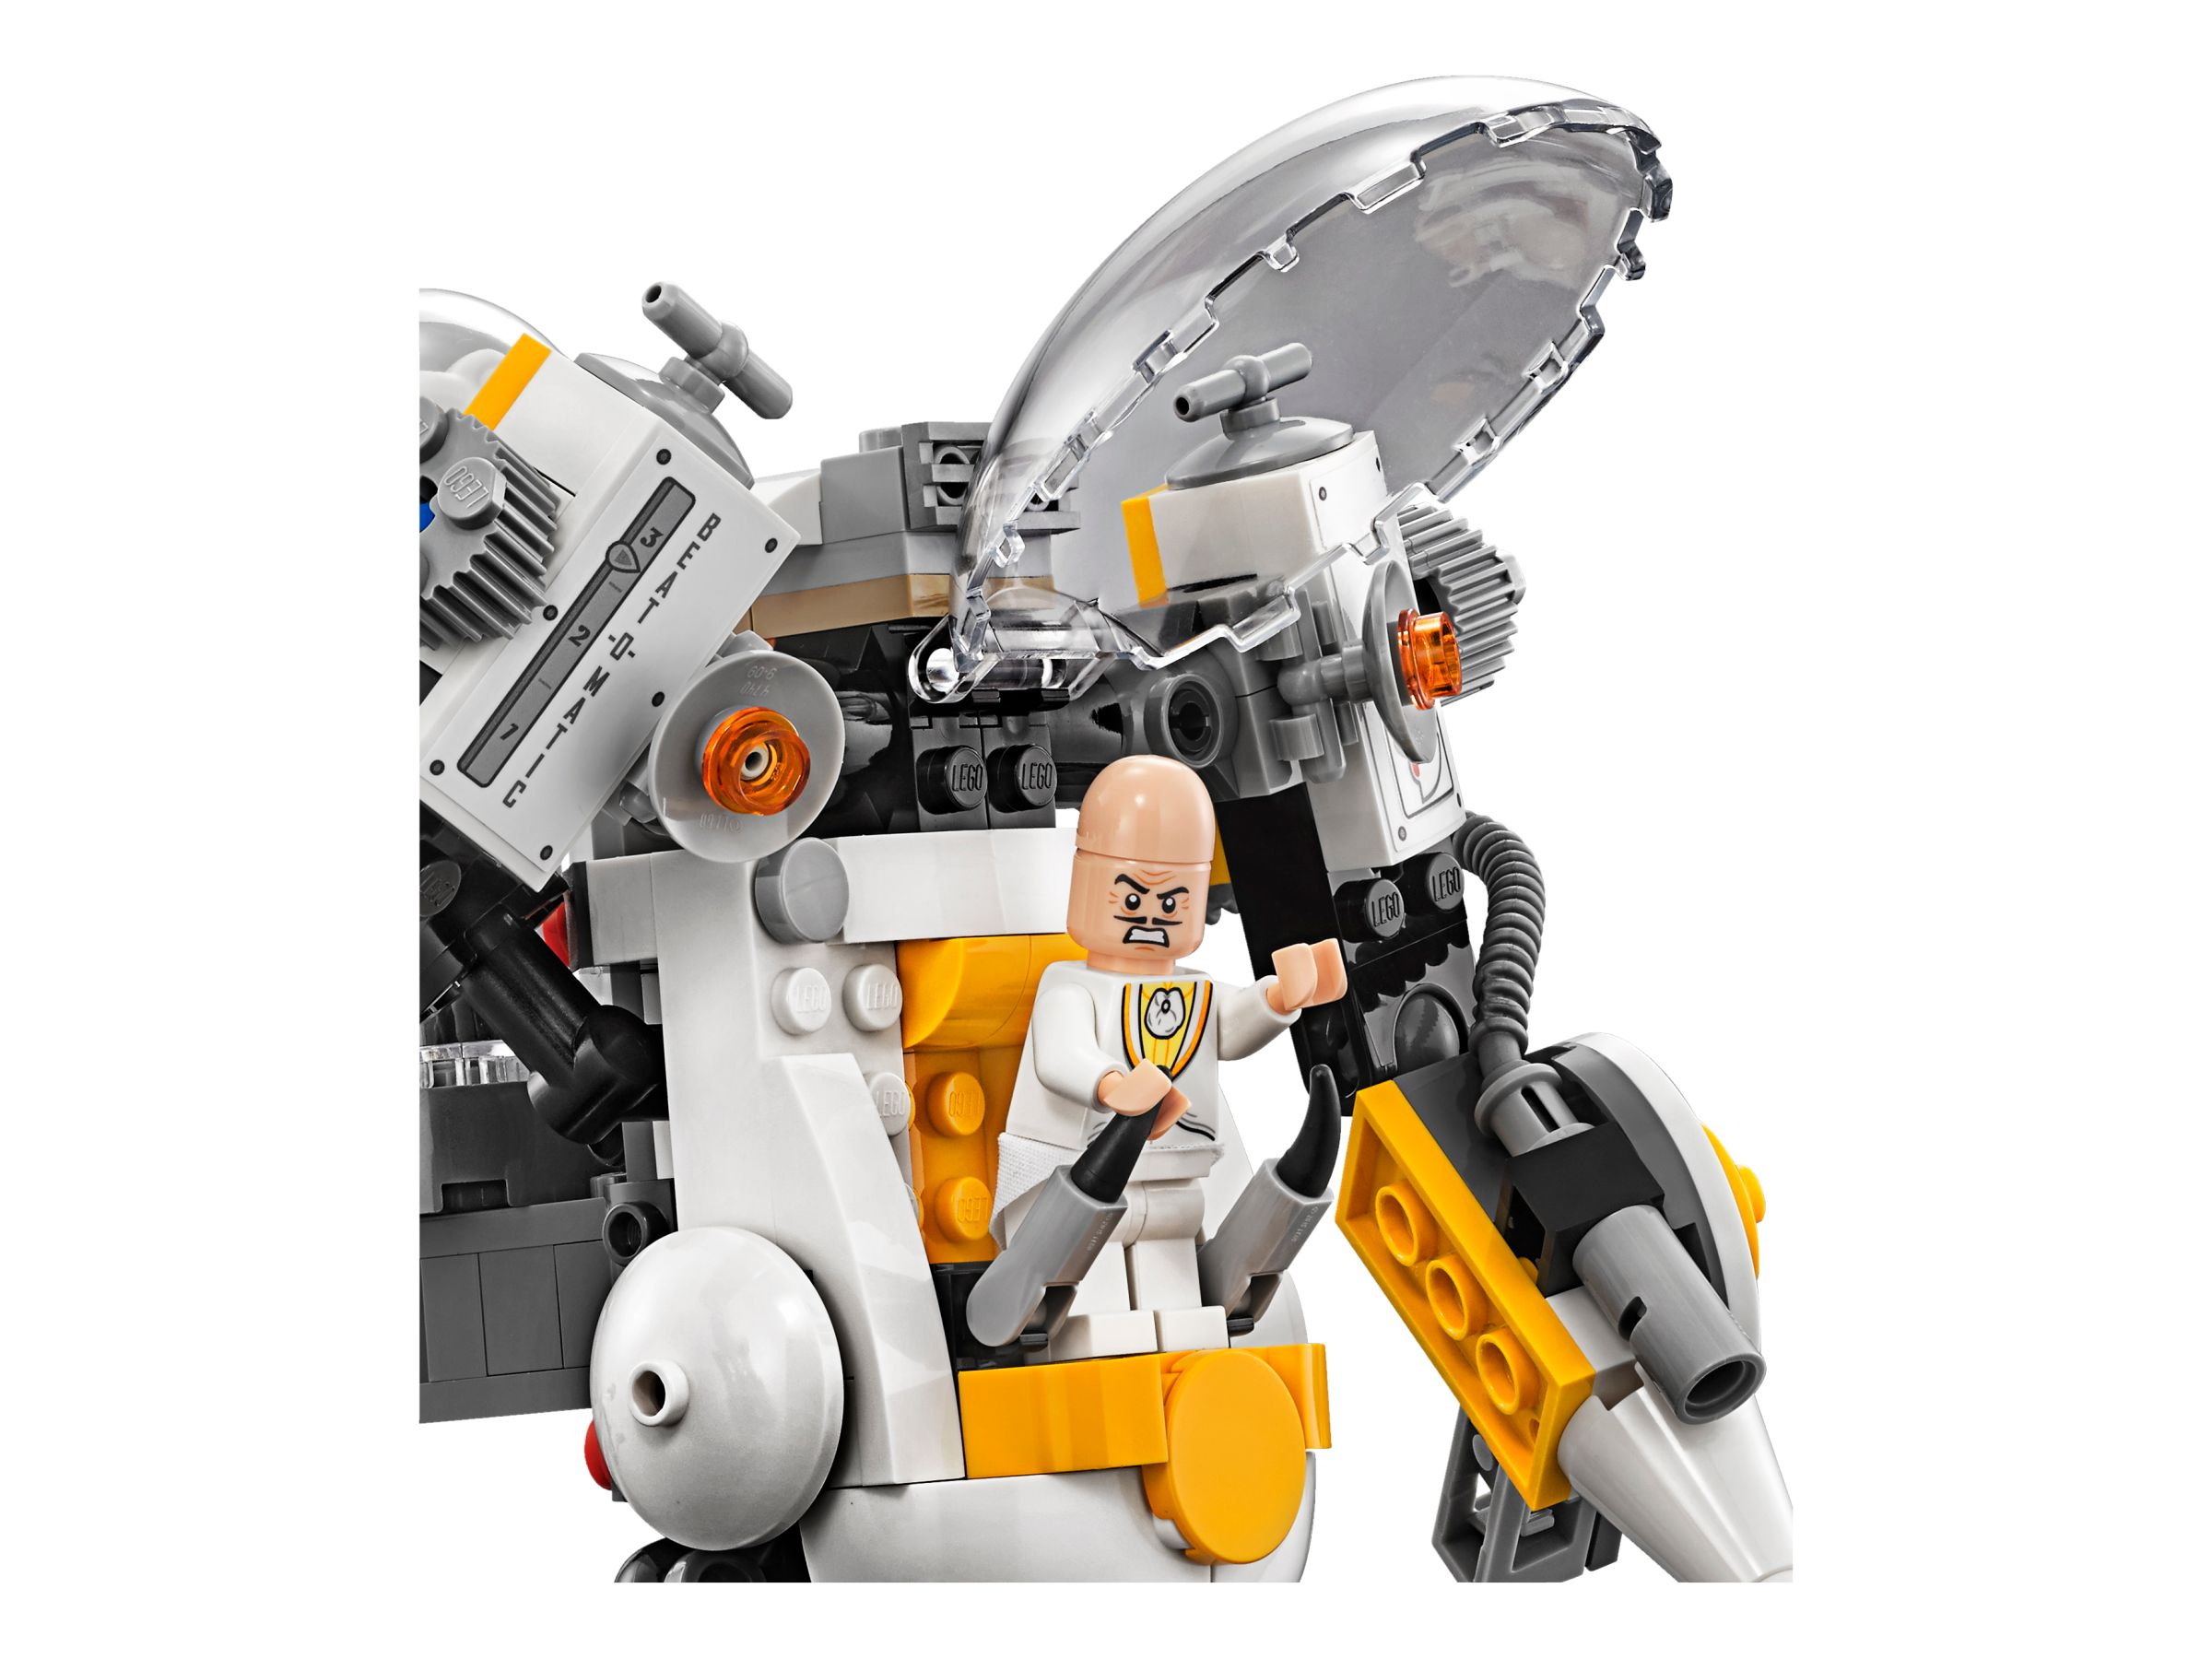 LEGO The LEGO Batman Movie 70920 Egghead bei der Roboter-Essenschlacht LEGO_70920_alt4.jpg